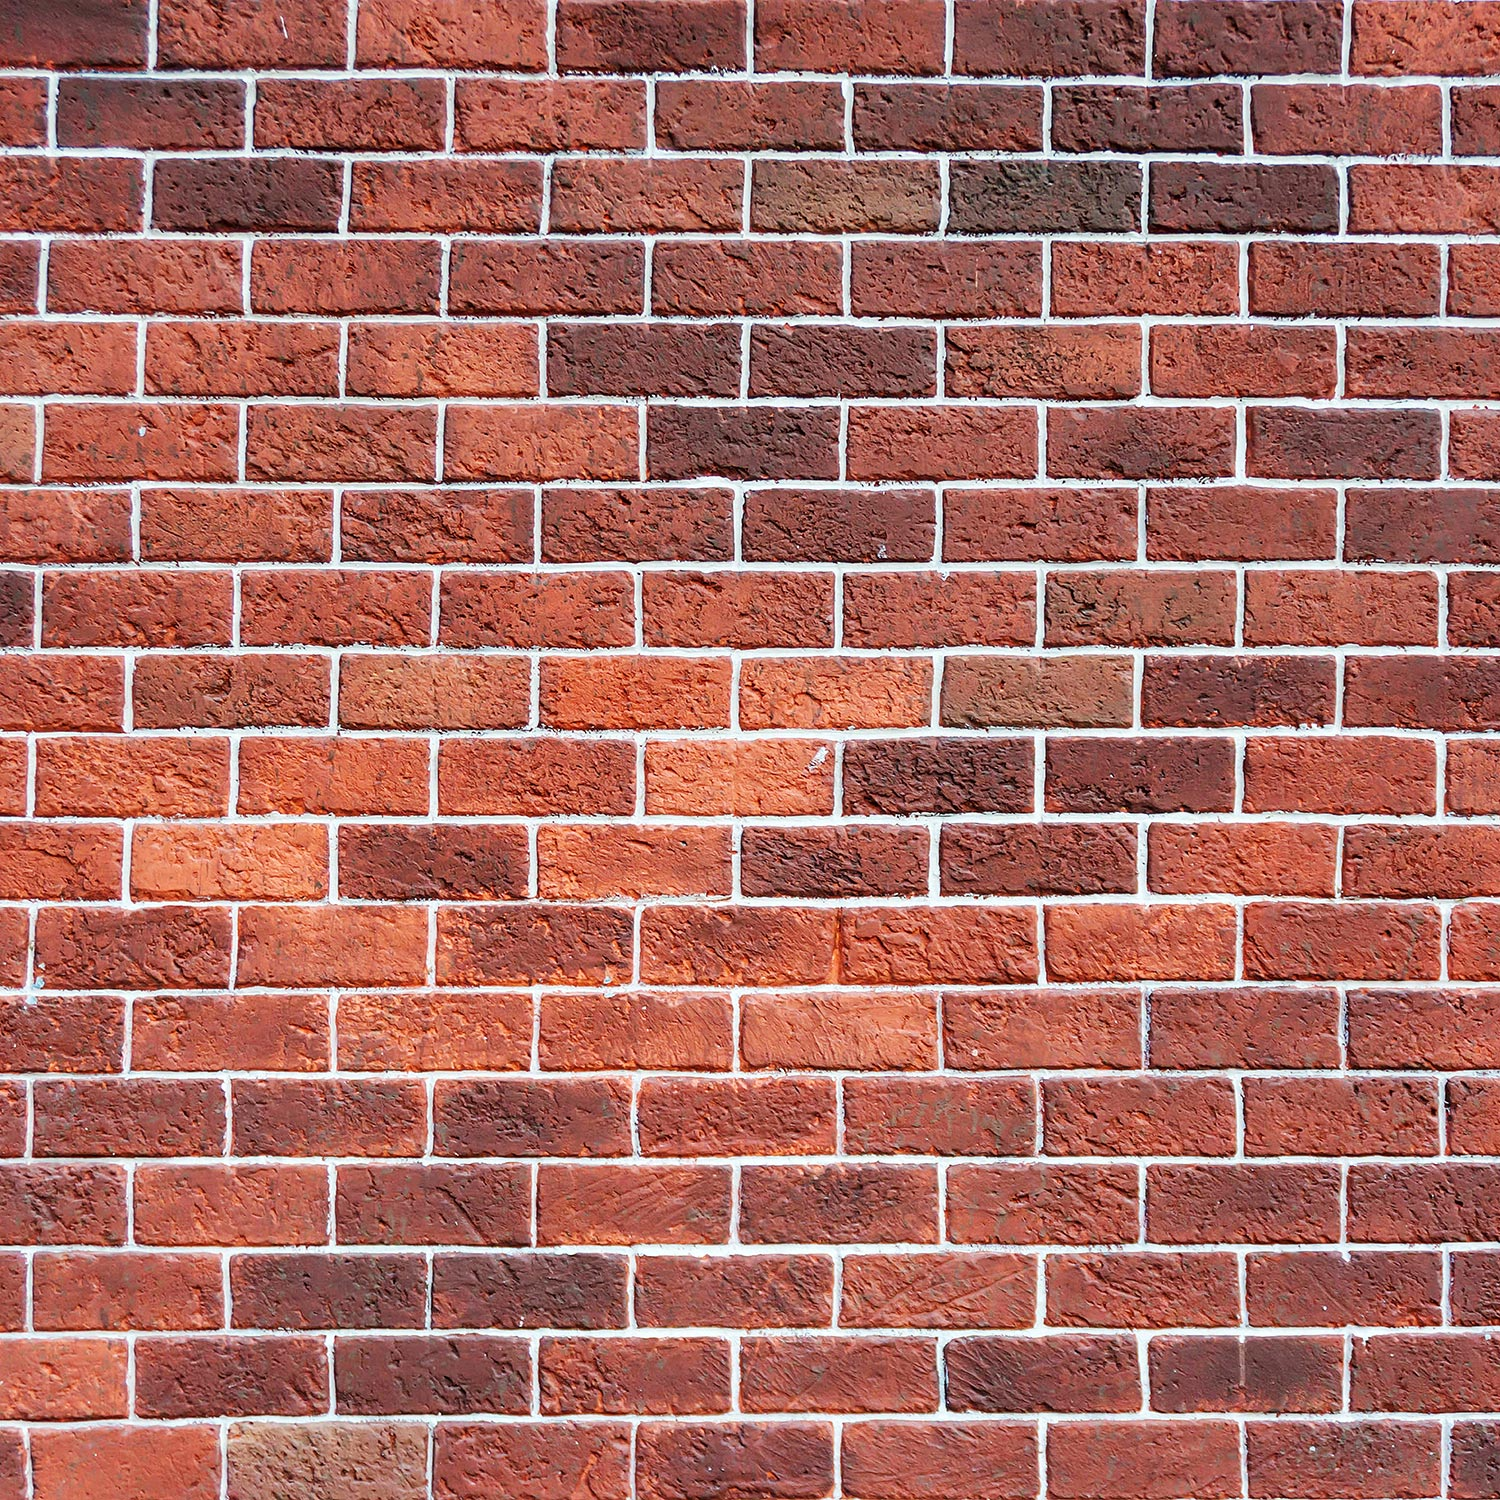 free photo red brick wall square stone rusty free download